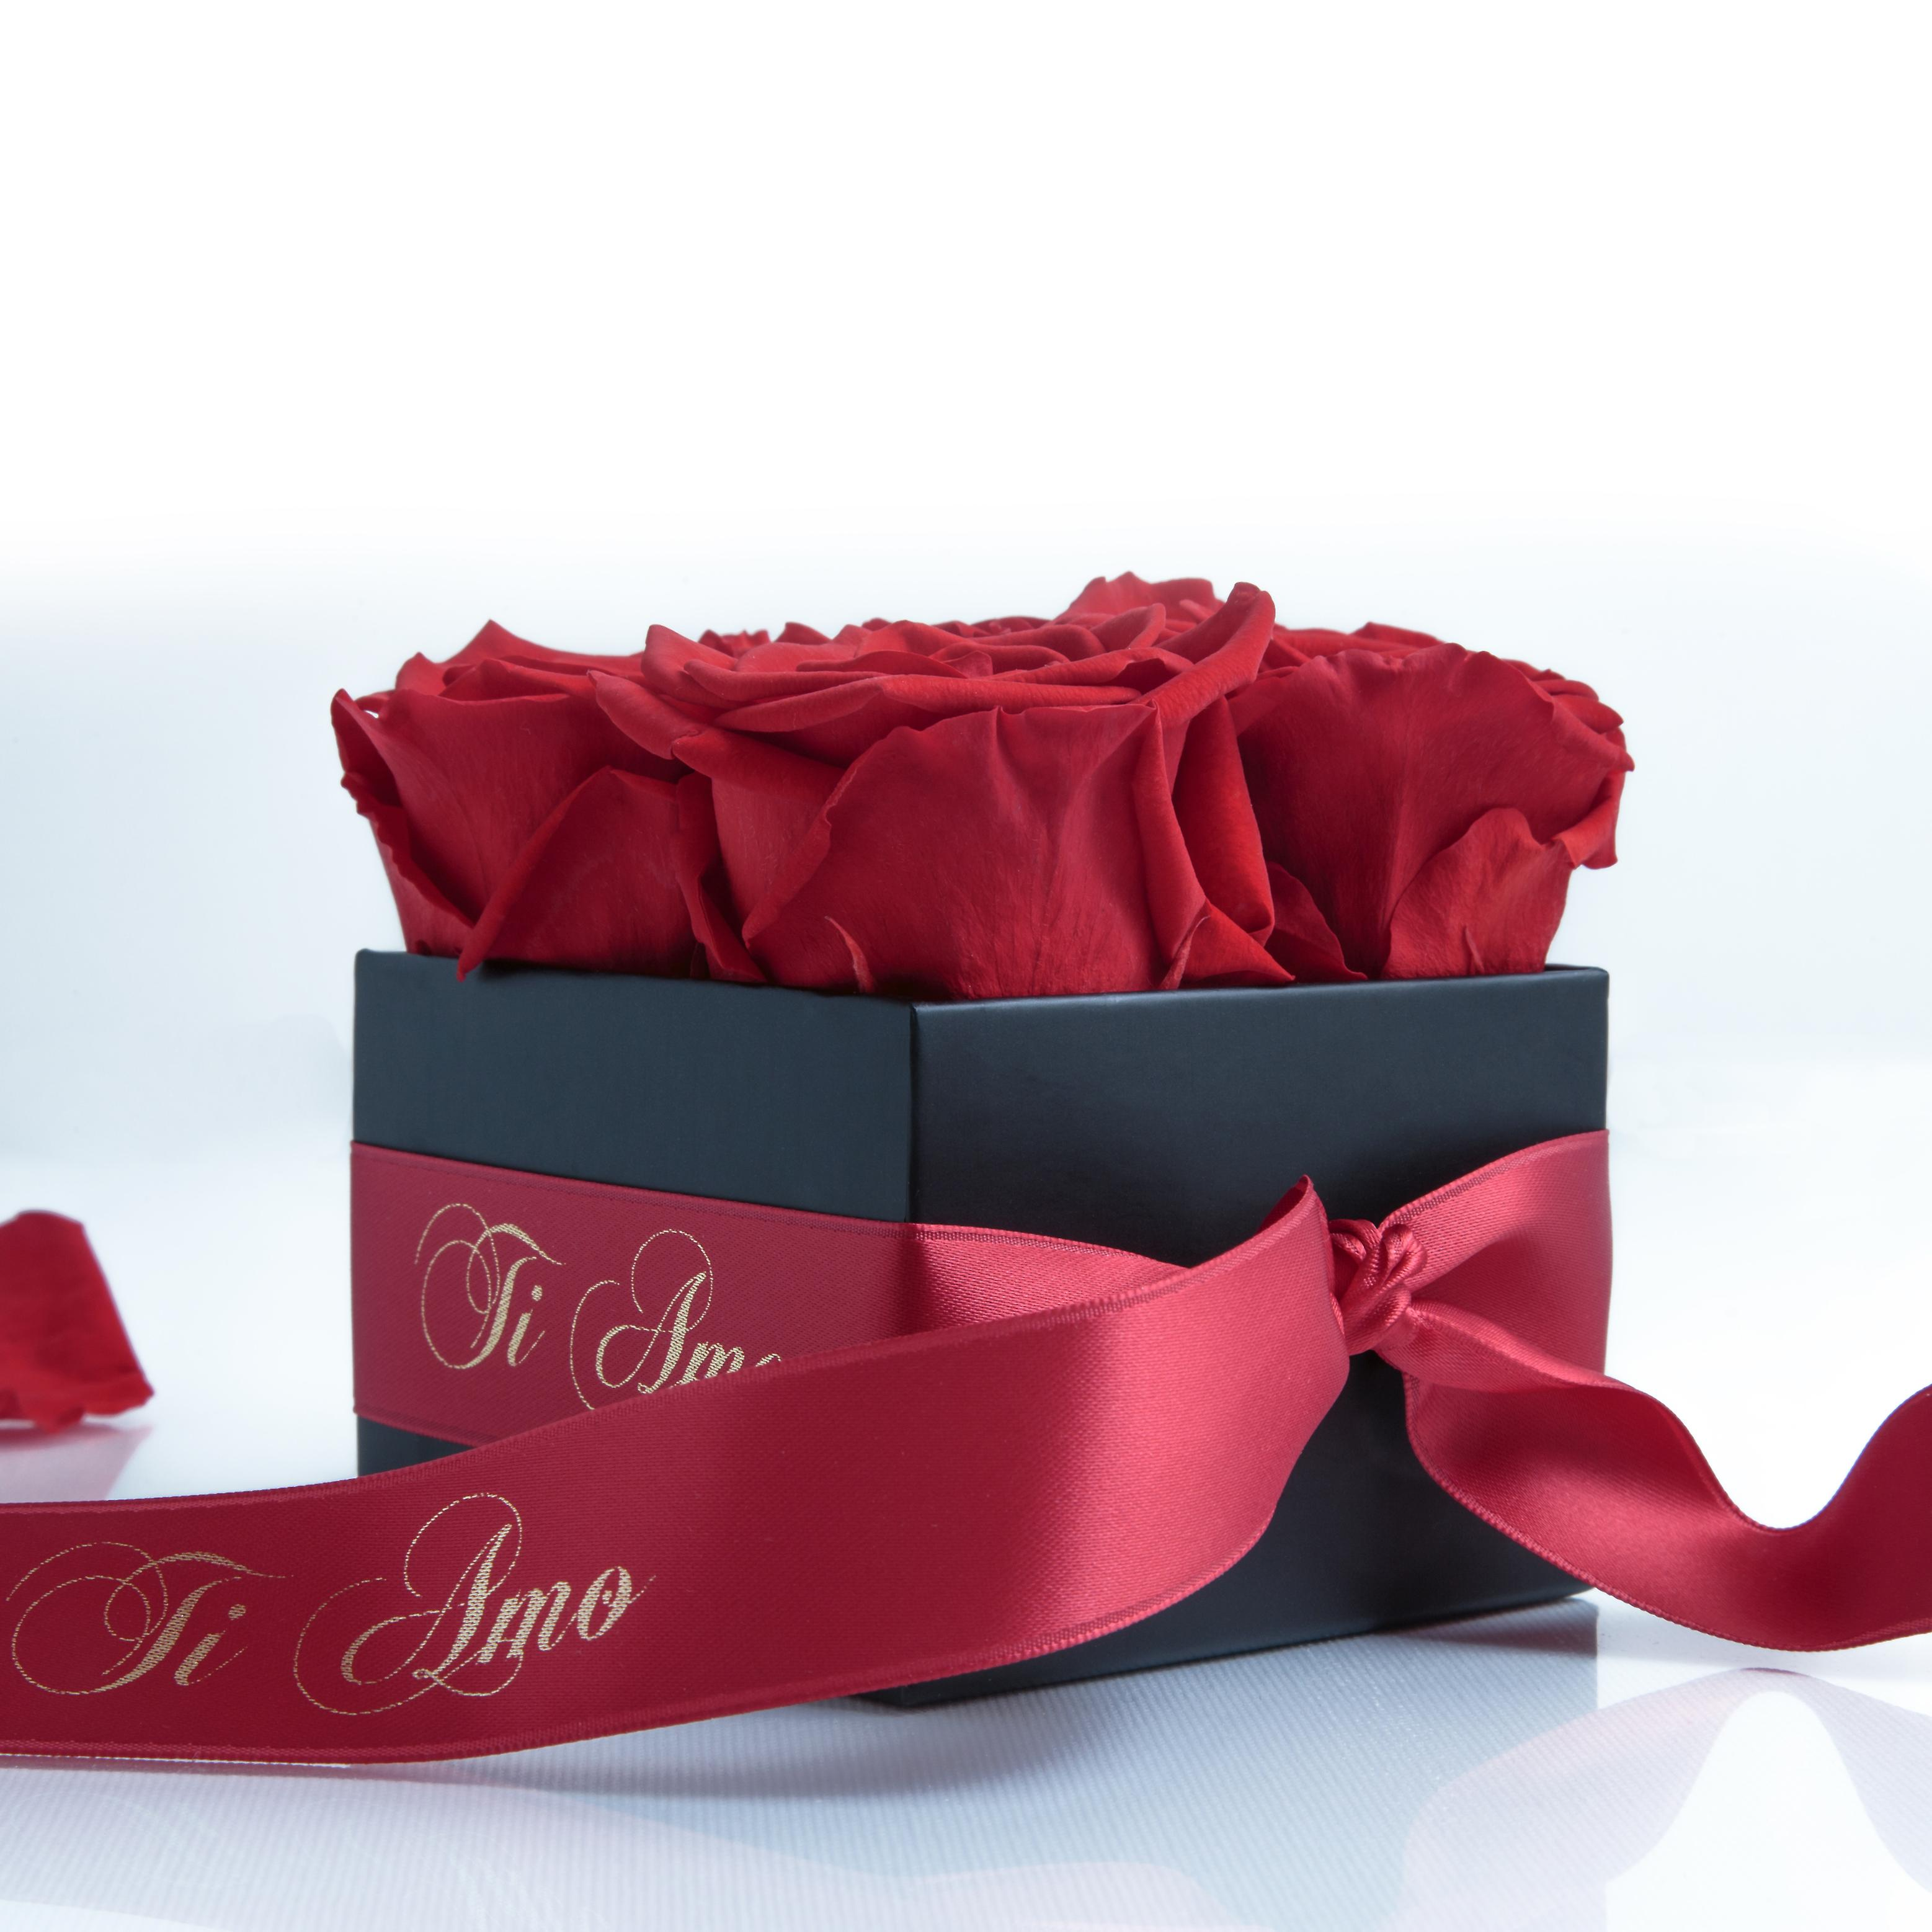 Rose red and satin ribbon preserved TI AMO box with 4 shelf life 3 years